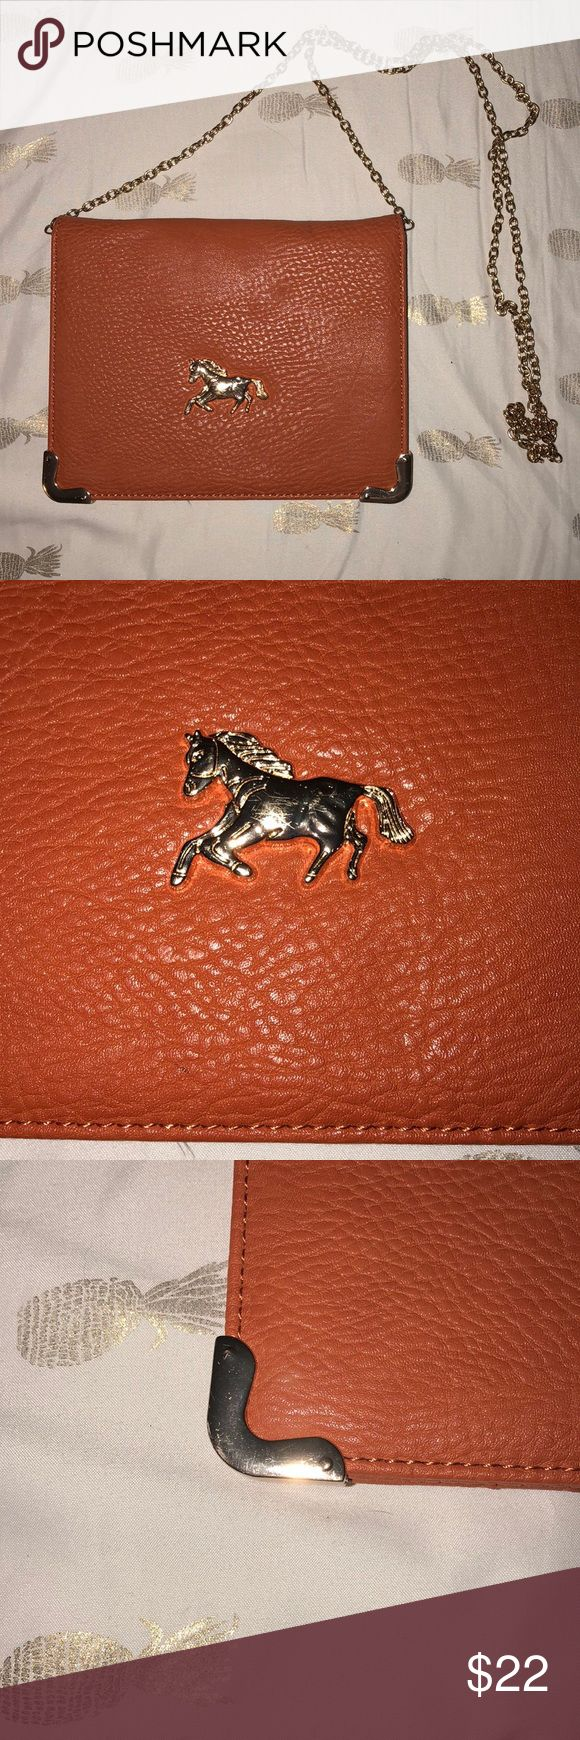 FRANCESCAS Brown Clutch w/ Horse Detail + Chain Beautiful brown/tan clutch with a thin chain strap! Gold Horse Detail on front with minor scratching. Inside of clutch contains multiple pockets, slots, and zippered sections. Minor flaws on front of clutch - like small indents. Not that noticeable. Has only been worn a handful of times. Francesca's Collections Bags Clutches & Wristlets